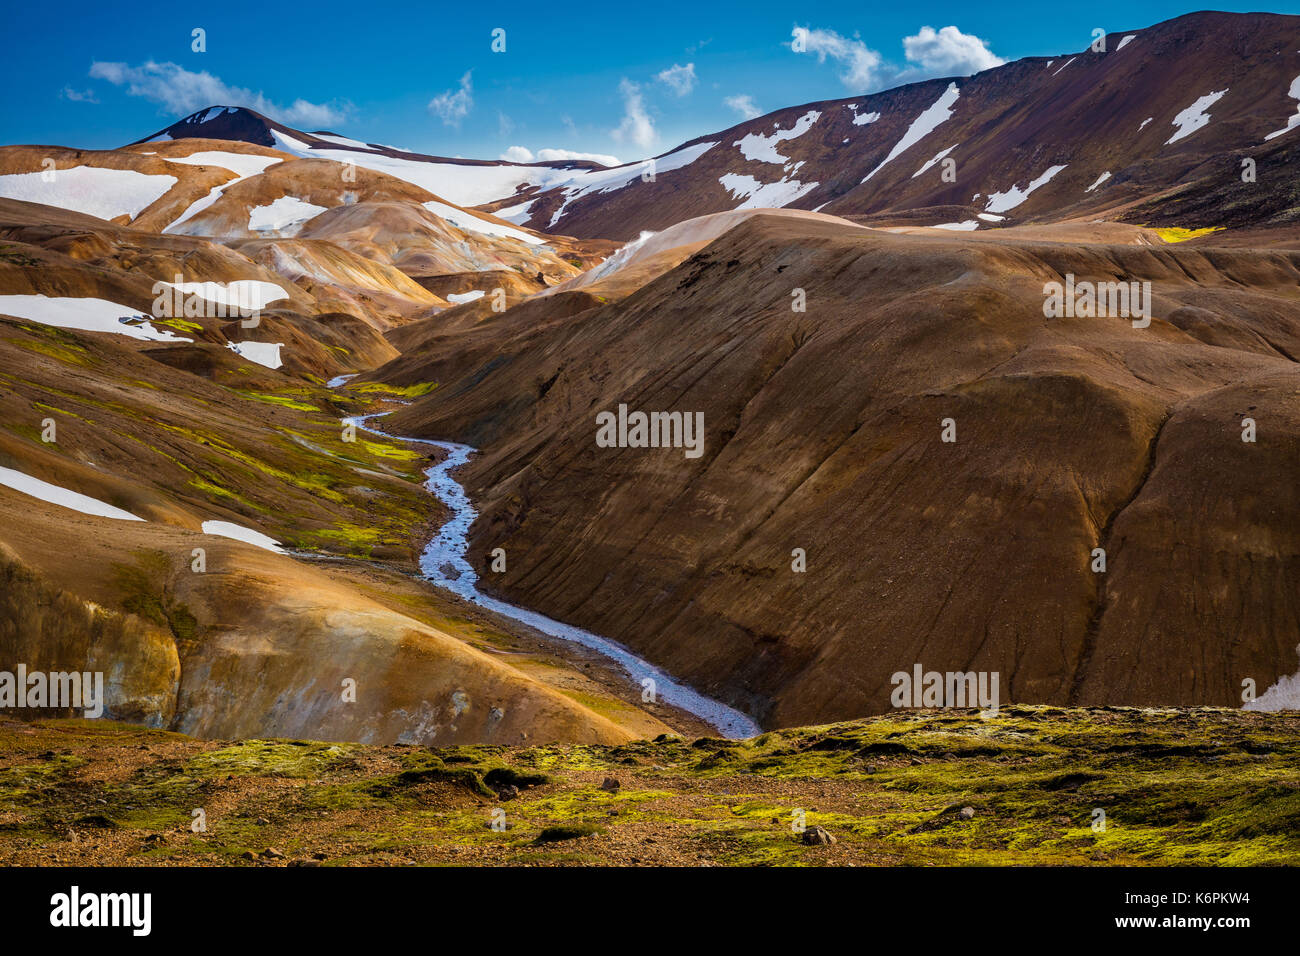 Kerlingarfjöll is a 1,477 m (4,846 ft)) tall mountain range in Iceland situated in the Highlands of Iceland near the Kjölur highland road. - Stock Image